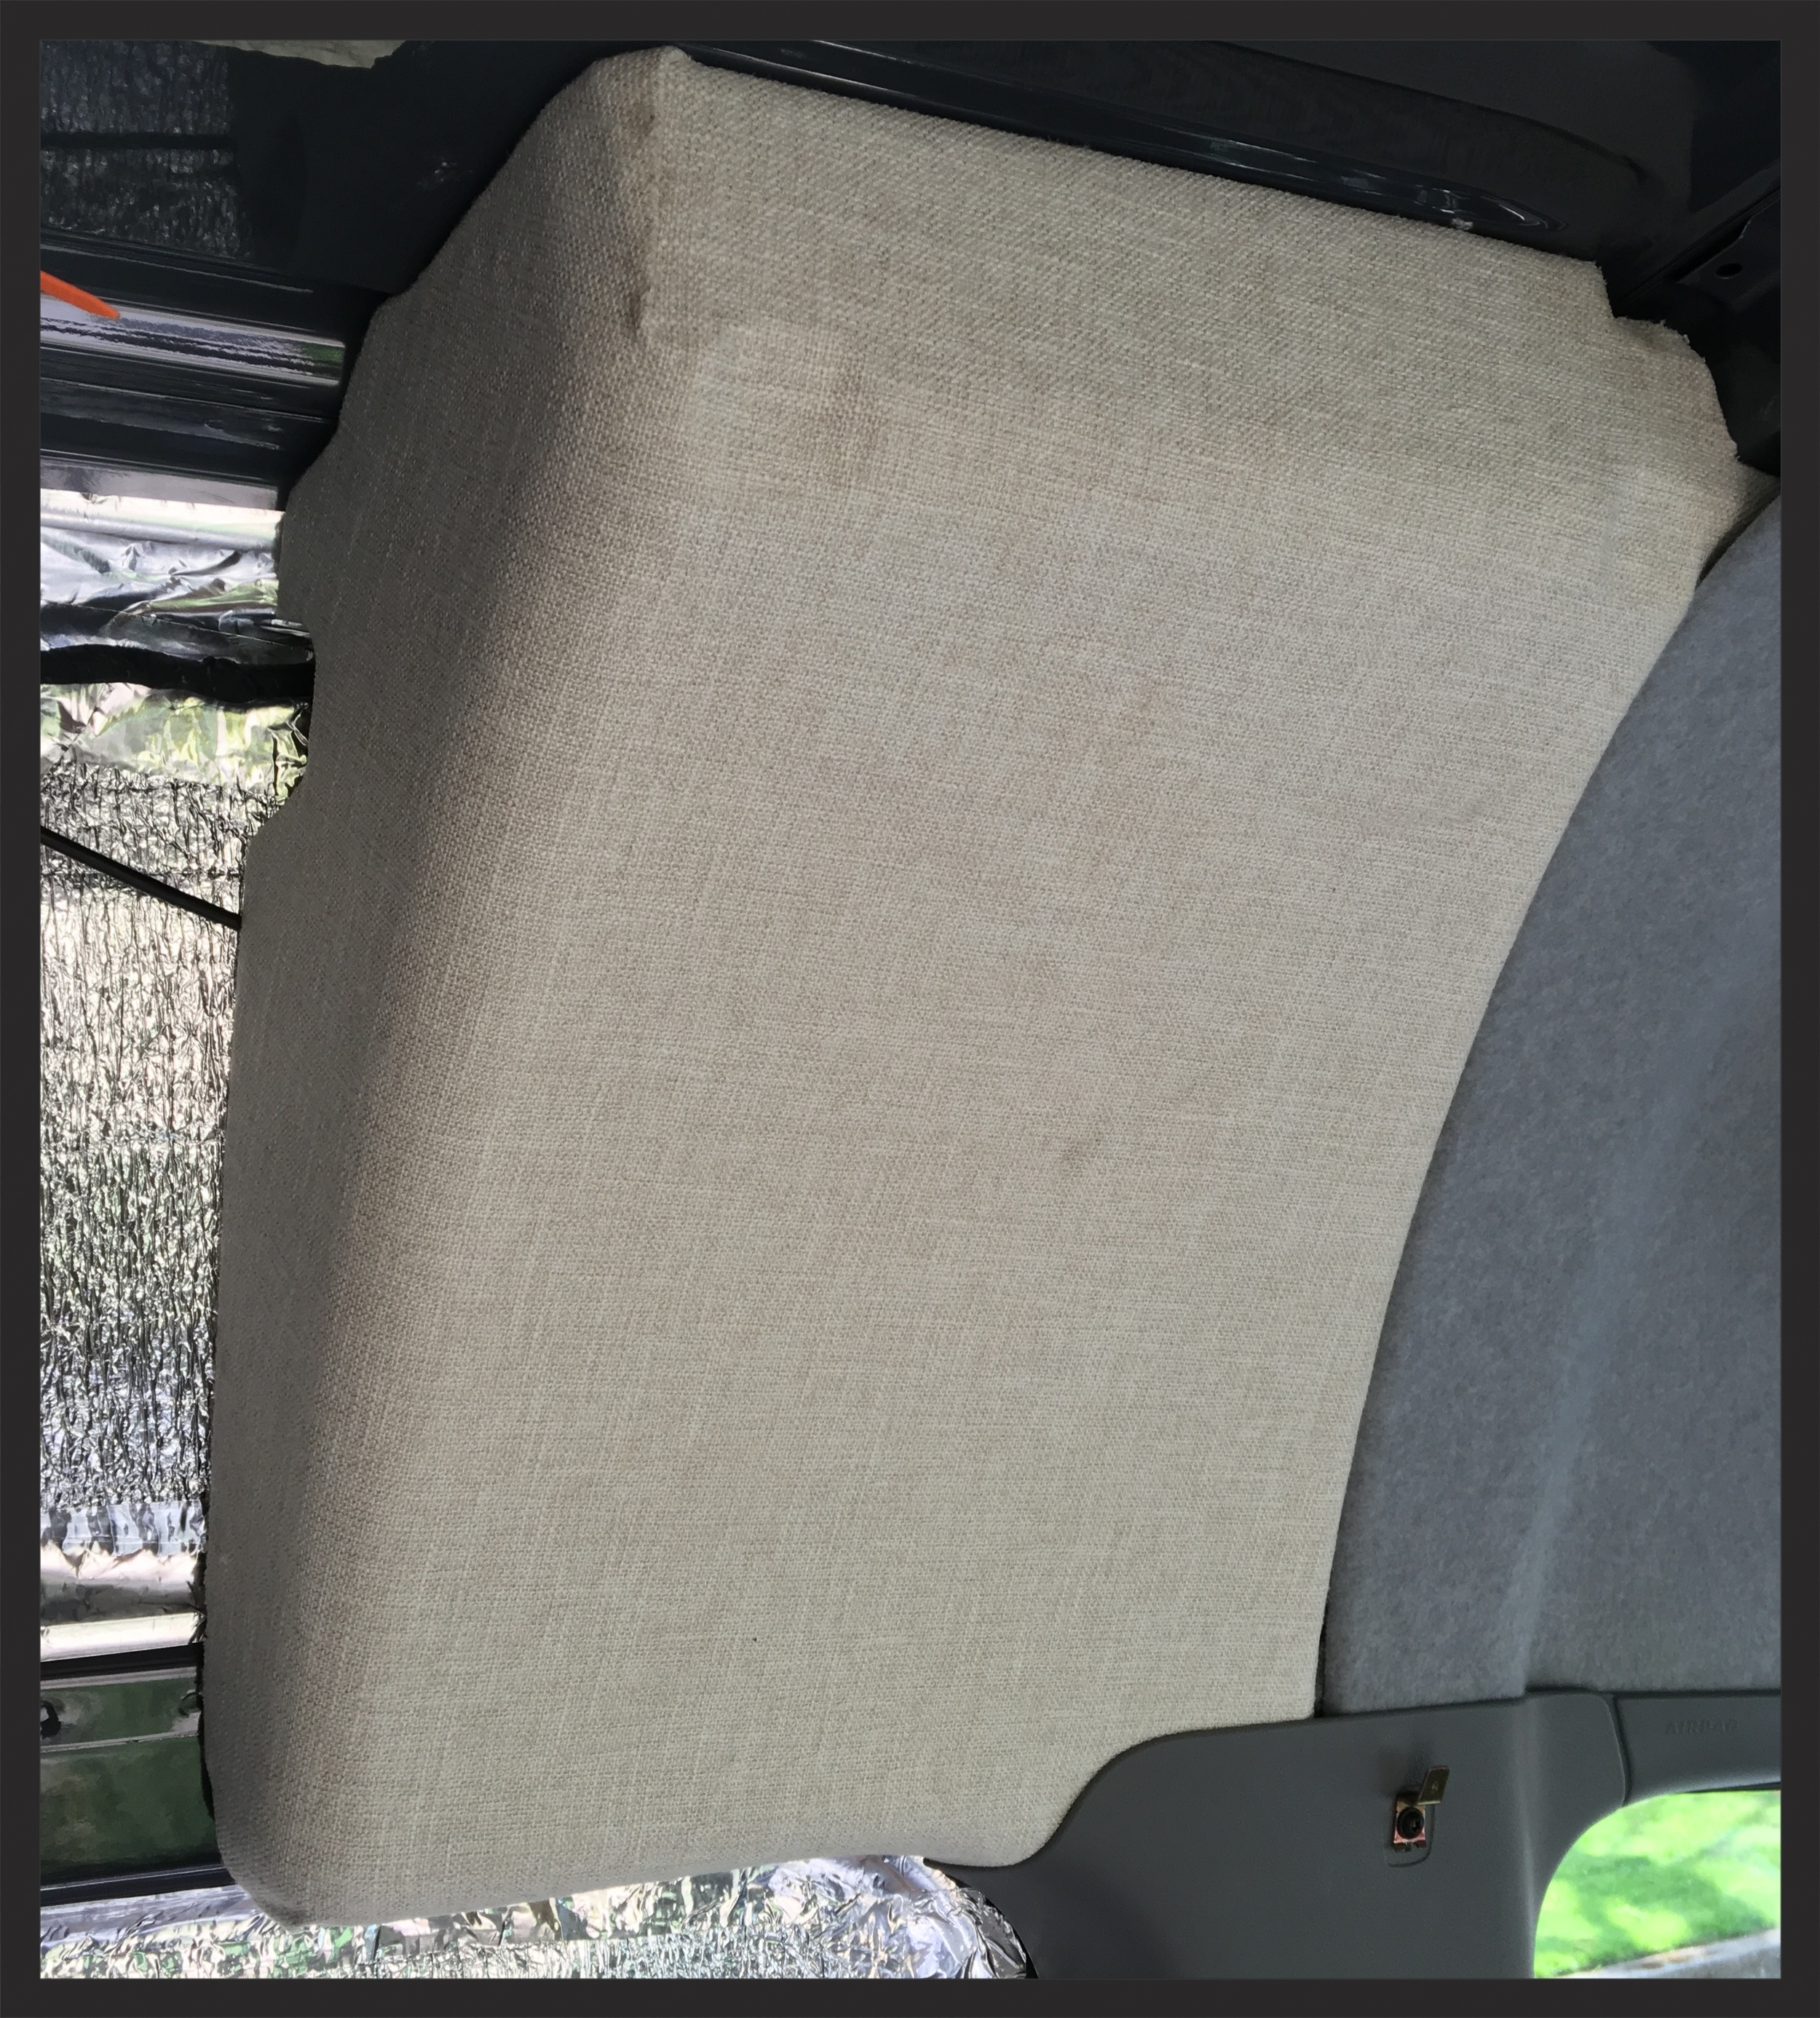 The purpose of these foam blocks is unclear--but they do cover a hole between the headliner in the cab and the cargo area, so we just covered them in cloth